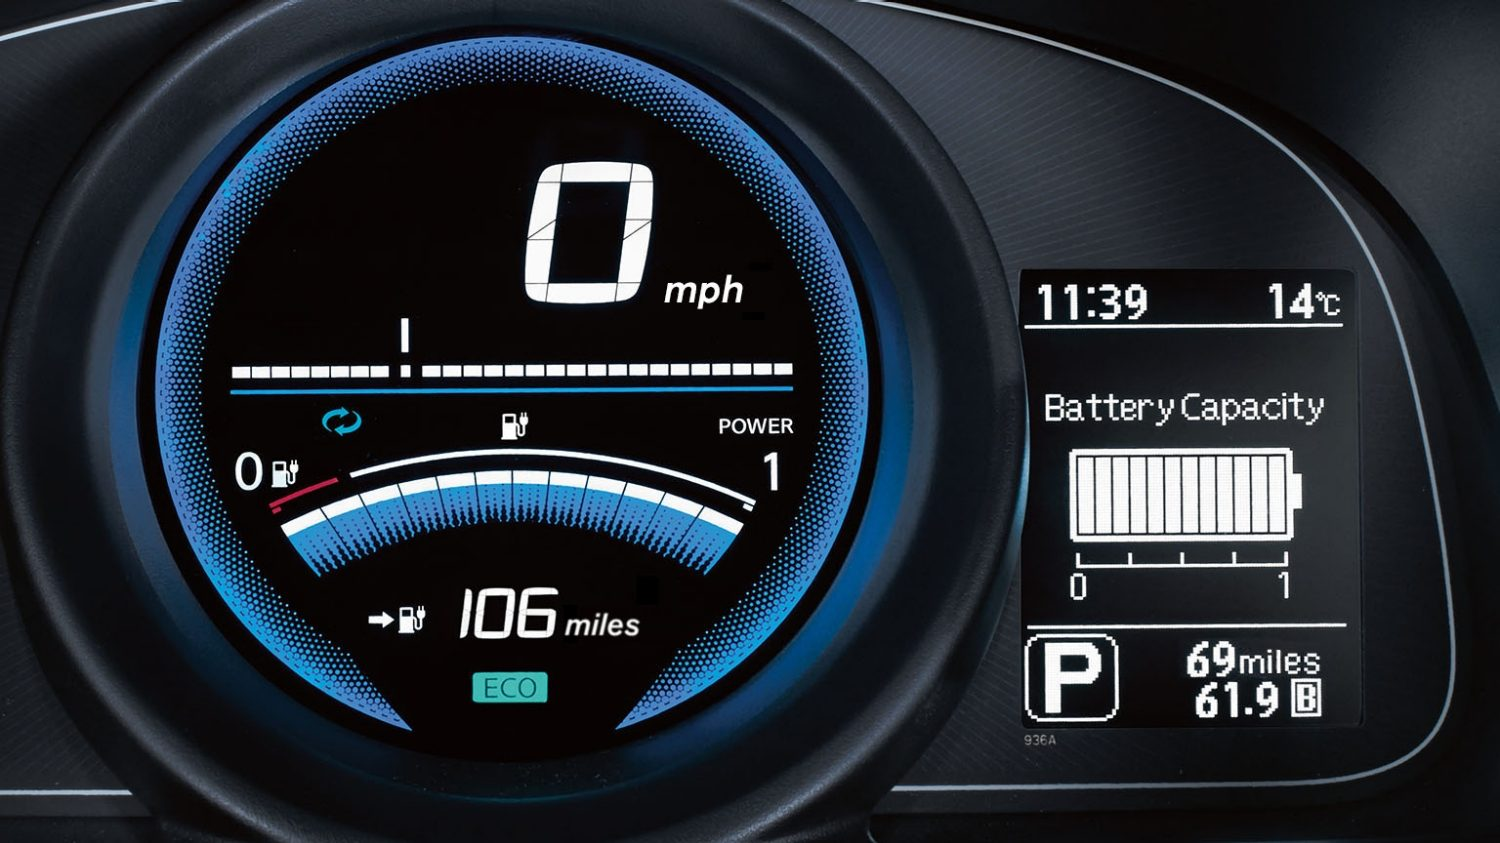 Van | Nissan e-NV200 | Speedometer and battery capacity display